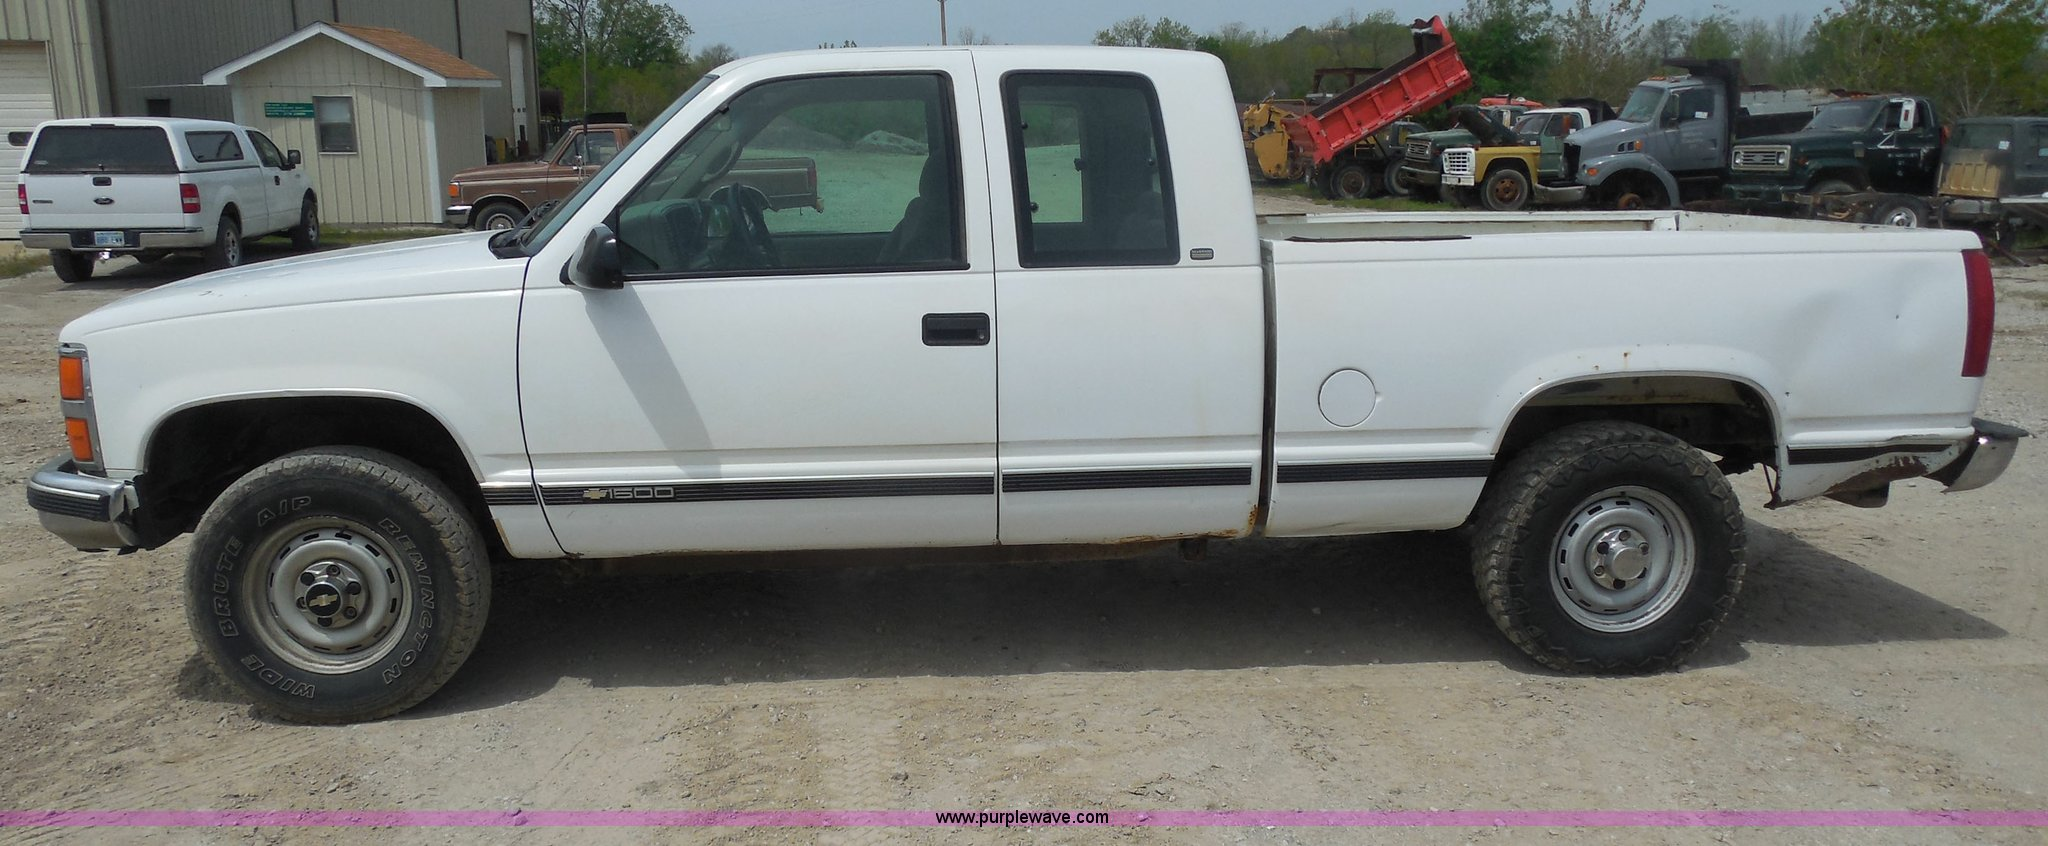 All Chevy 98 chevrolet 1500 : 1998 Chevrolet Silverado 1500 Extended Cab pickup truck | It...